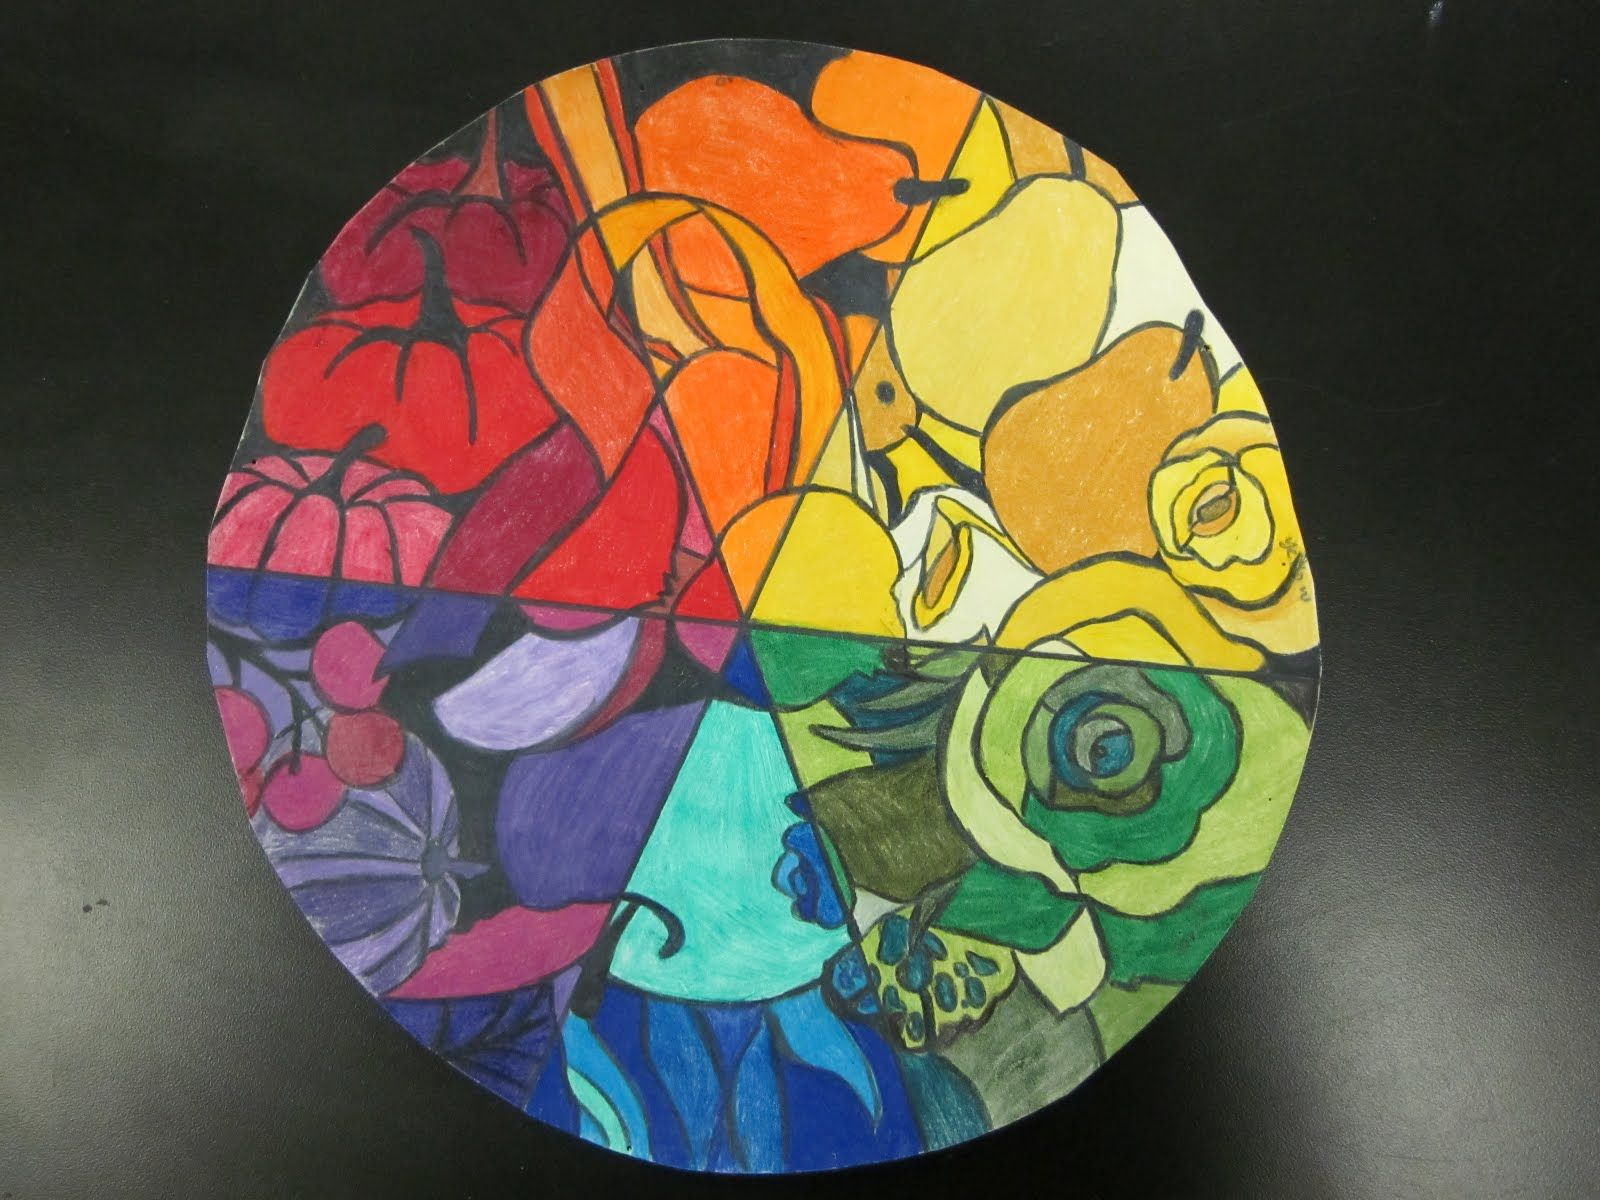 Color theory online games - Interesting Twist On A Color Wheel Project Draw An Image On A Circular Card